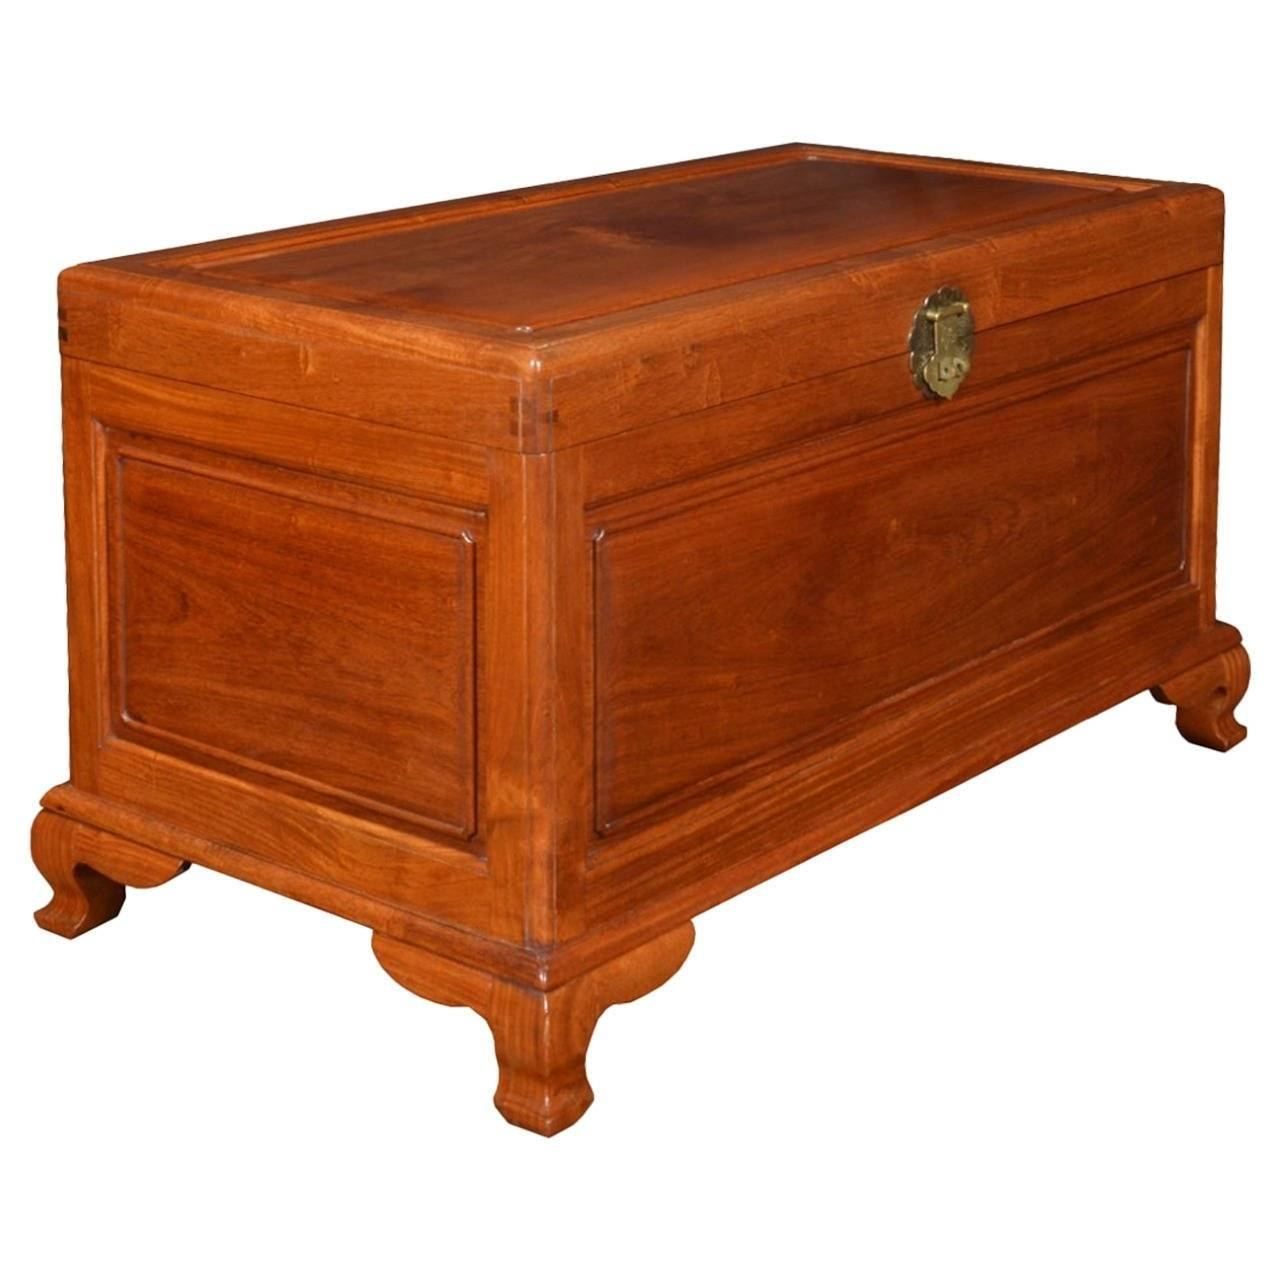 Chinese Export Camphor Wood Trunk Coffee Table For Sale At 1Stdibs intended for Chinese Coffee Tables (Image 8 of 30)